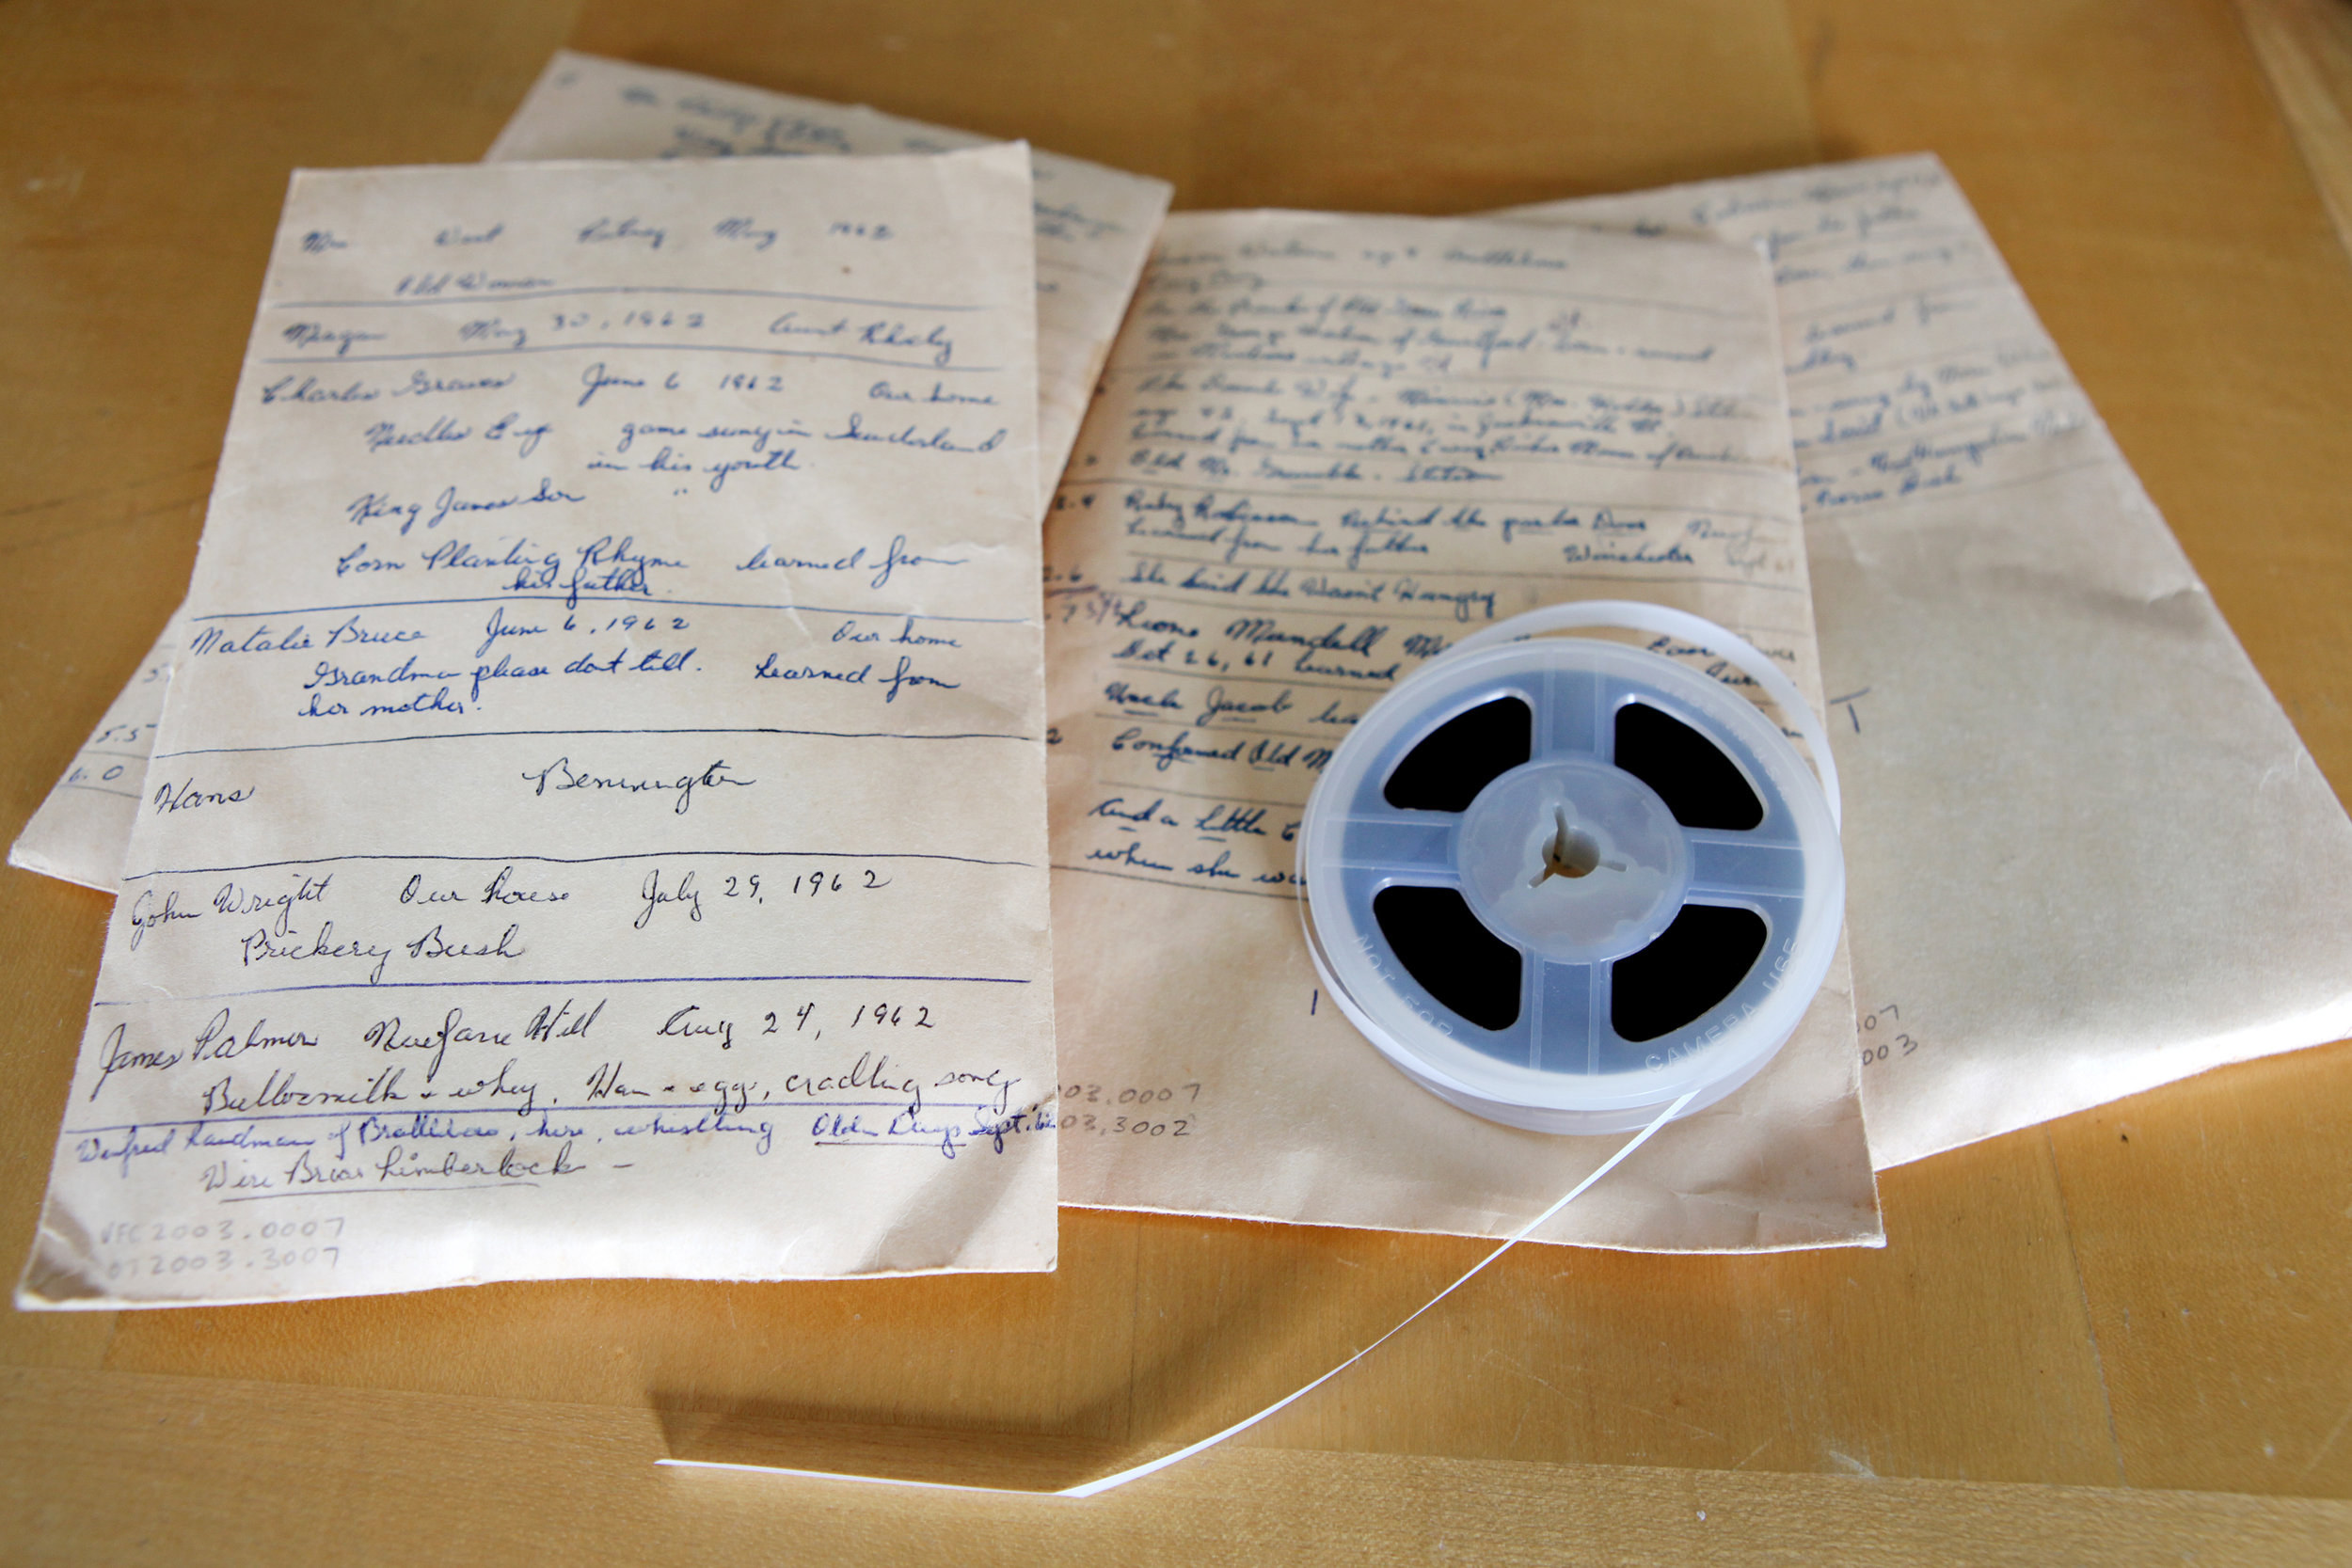 Field recordings from the Margaret MacArthur Collection, Vermont Folklife Center Archive.